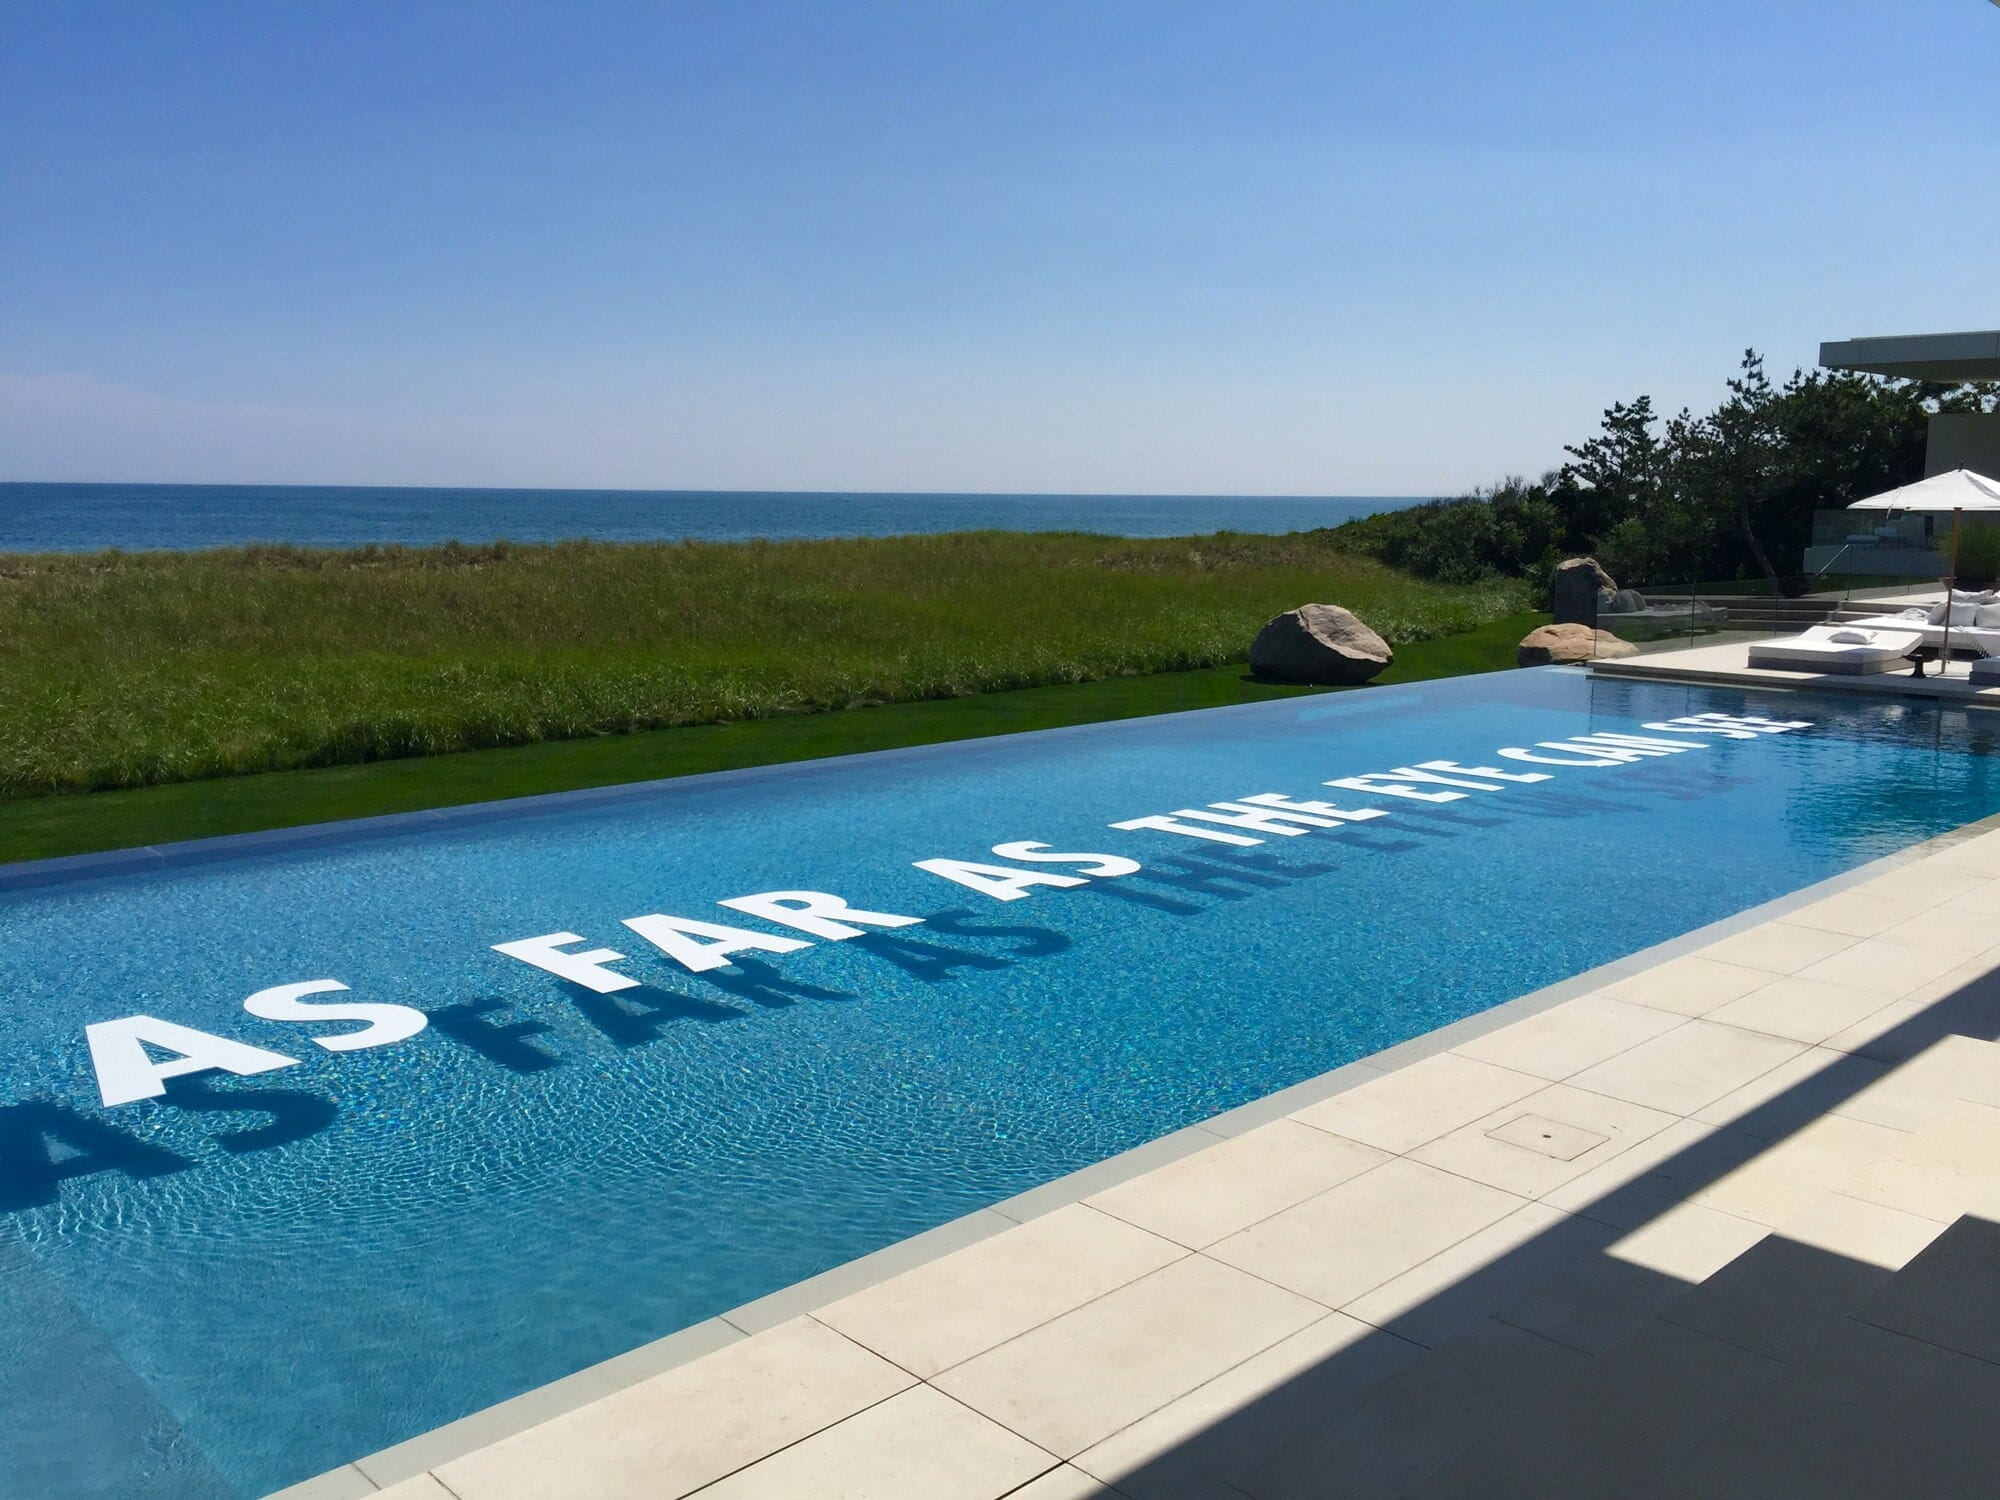 Lettering as floating pool decor